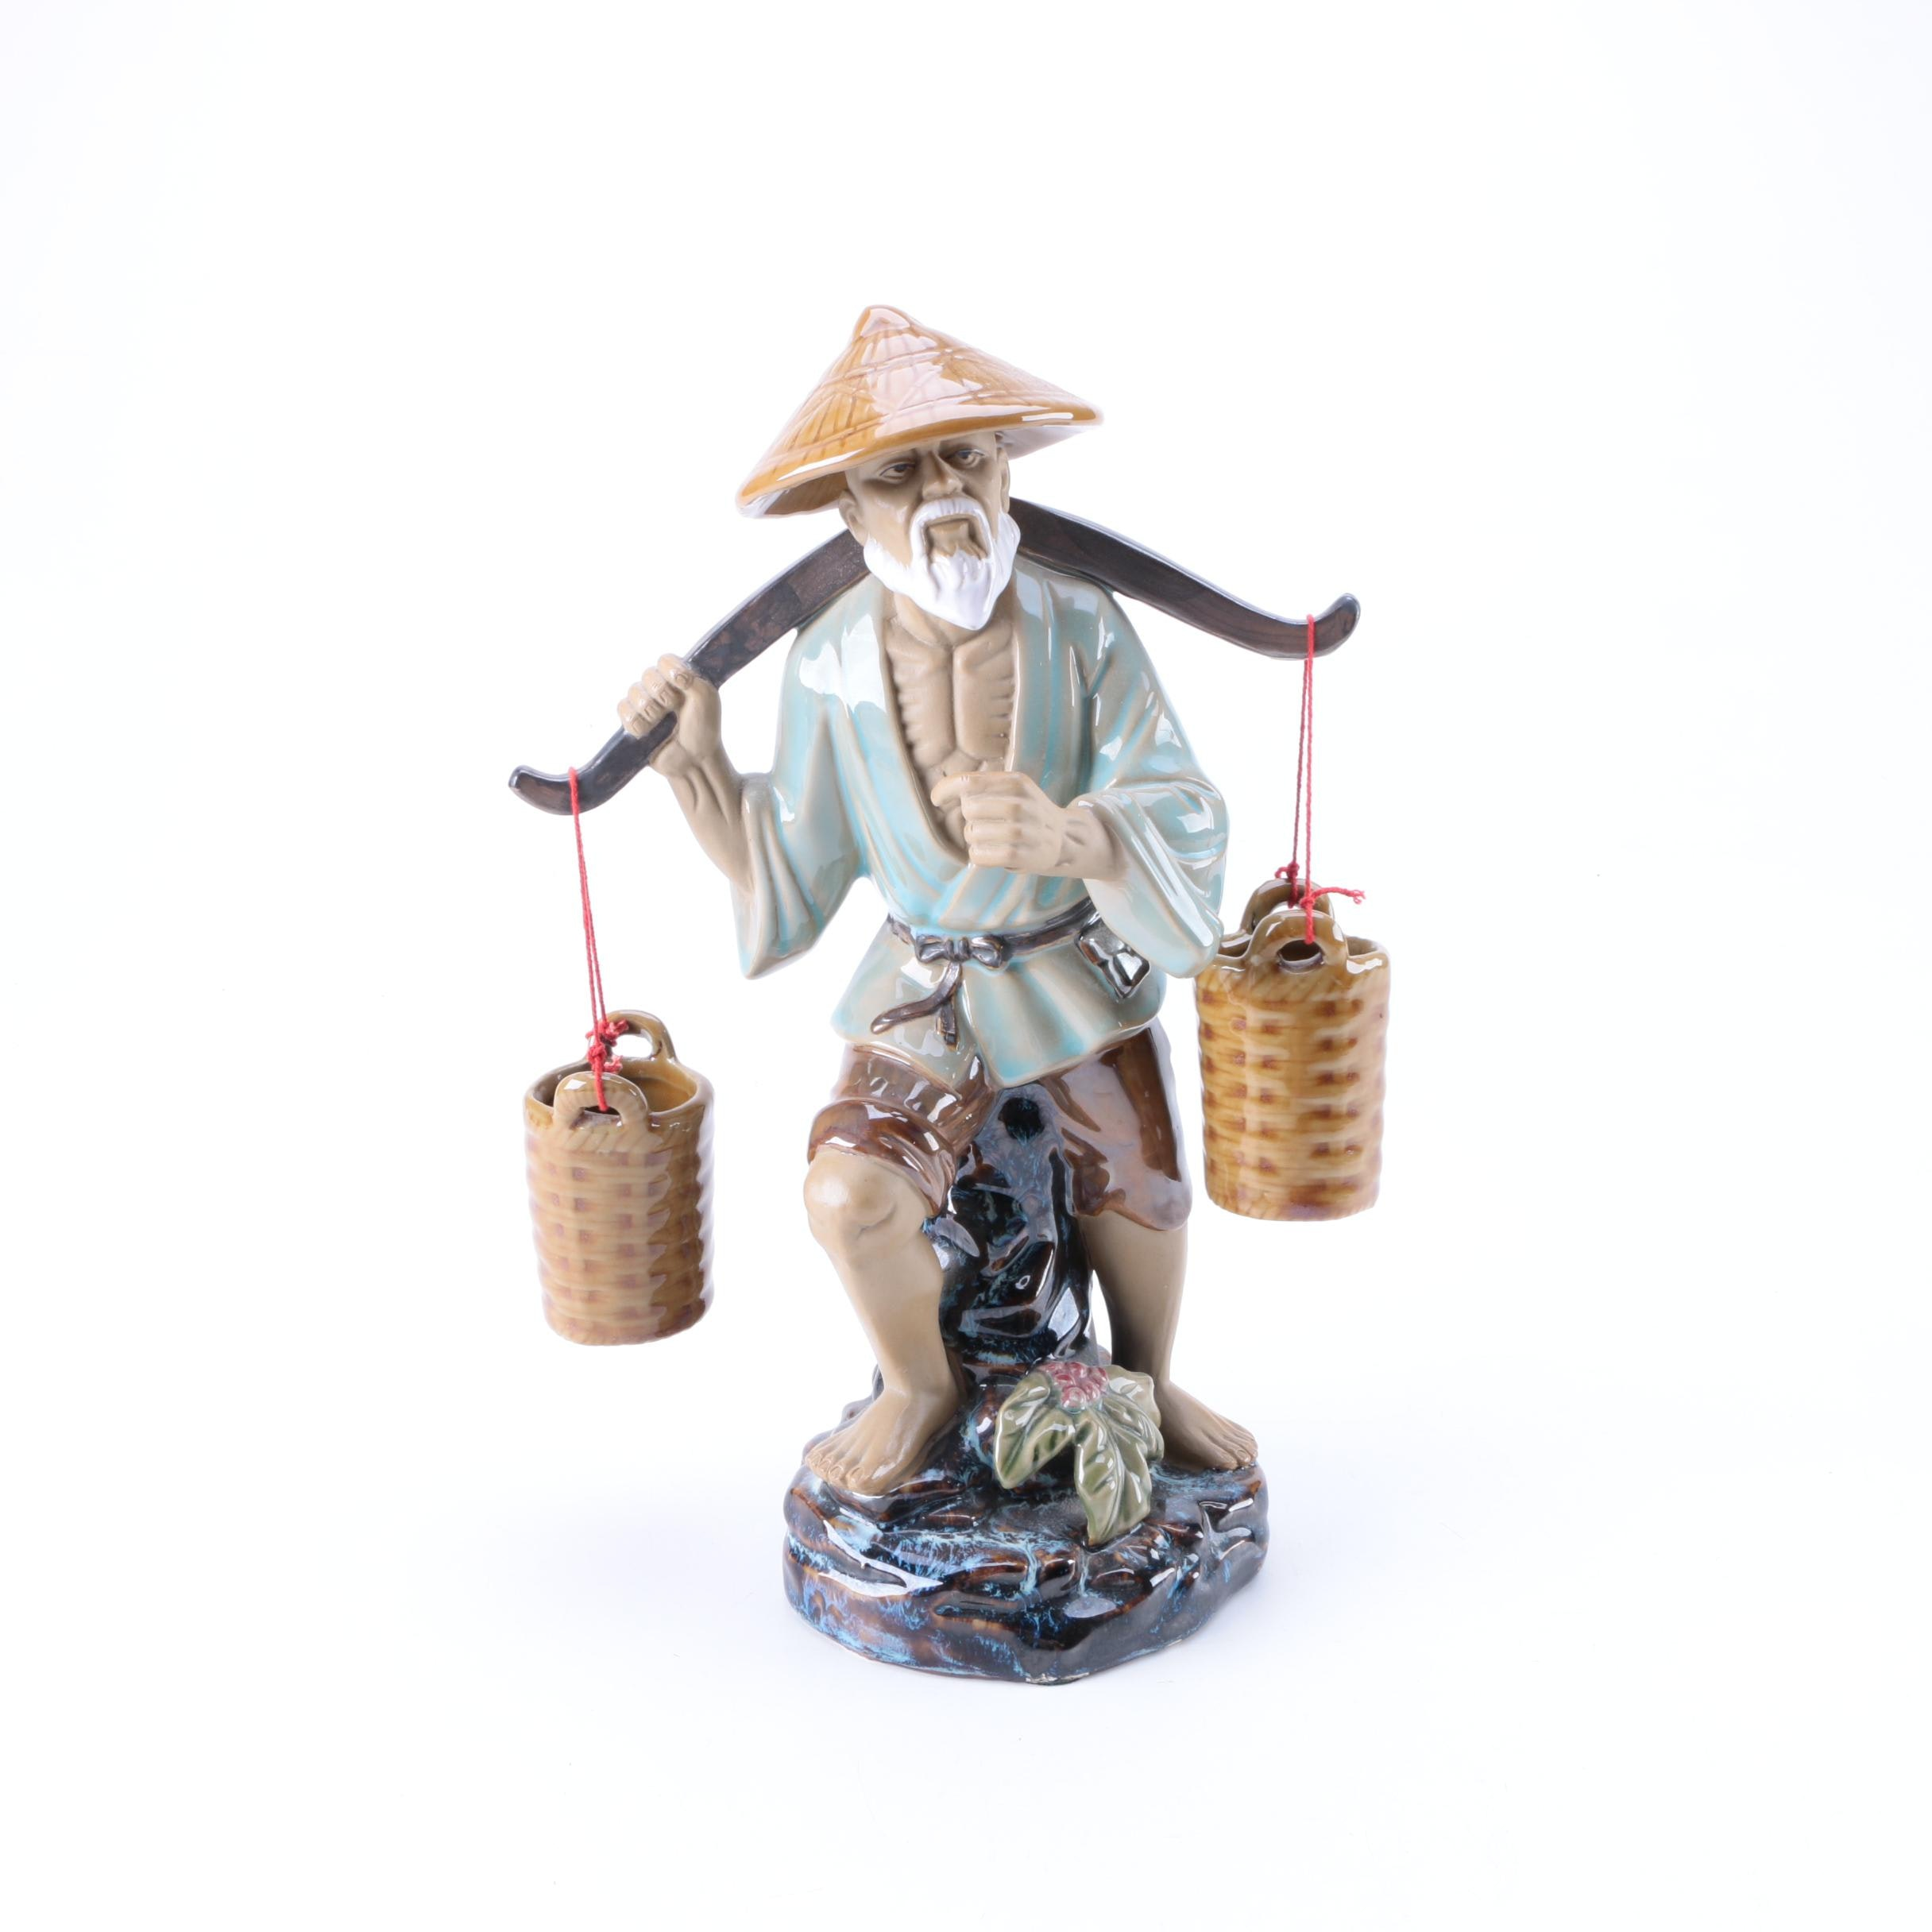 Chinese Inspired Ceramic Fisherman Figurine